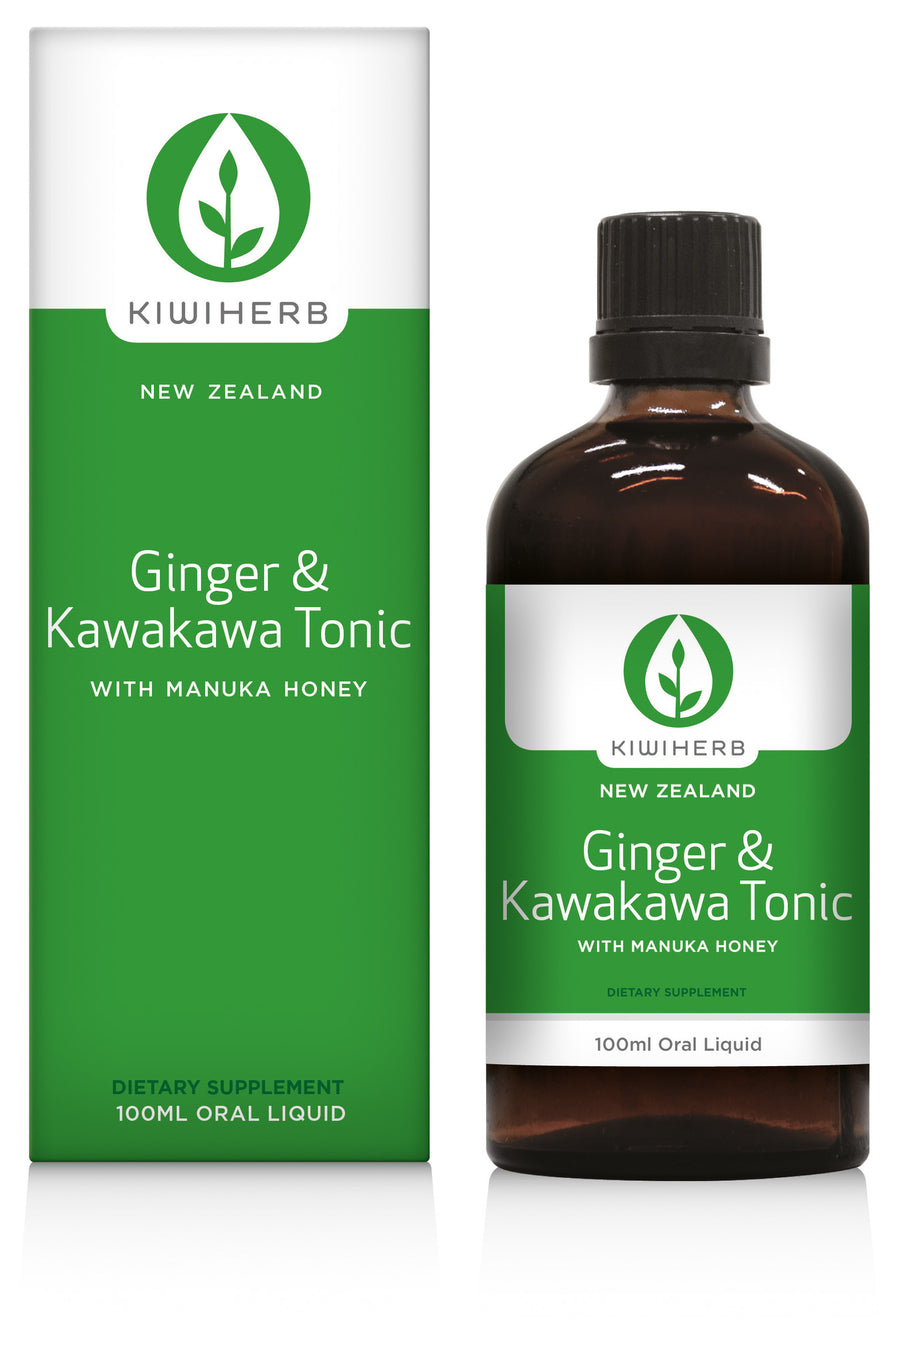 KIWI HERB Ging&Kawakawa Tonic 50ml